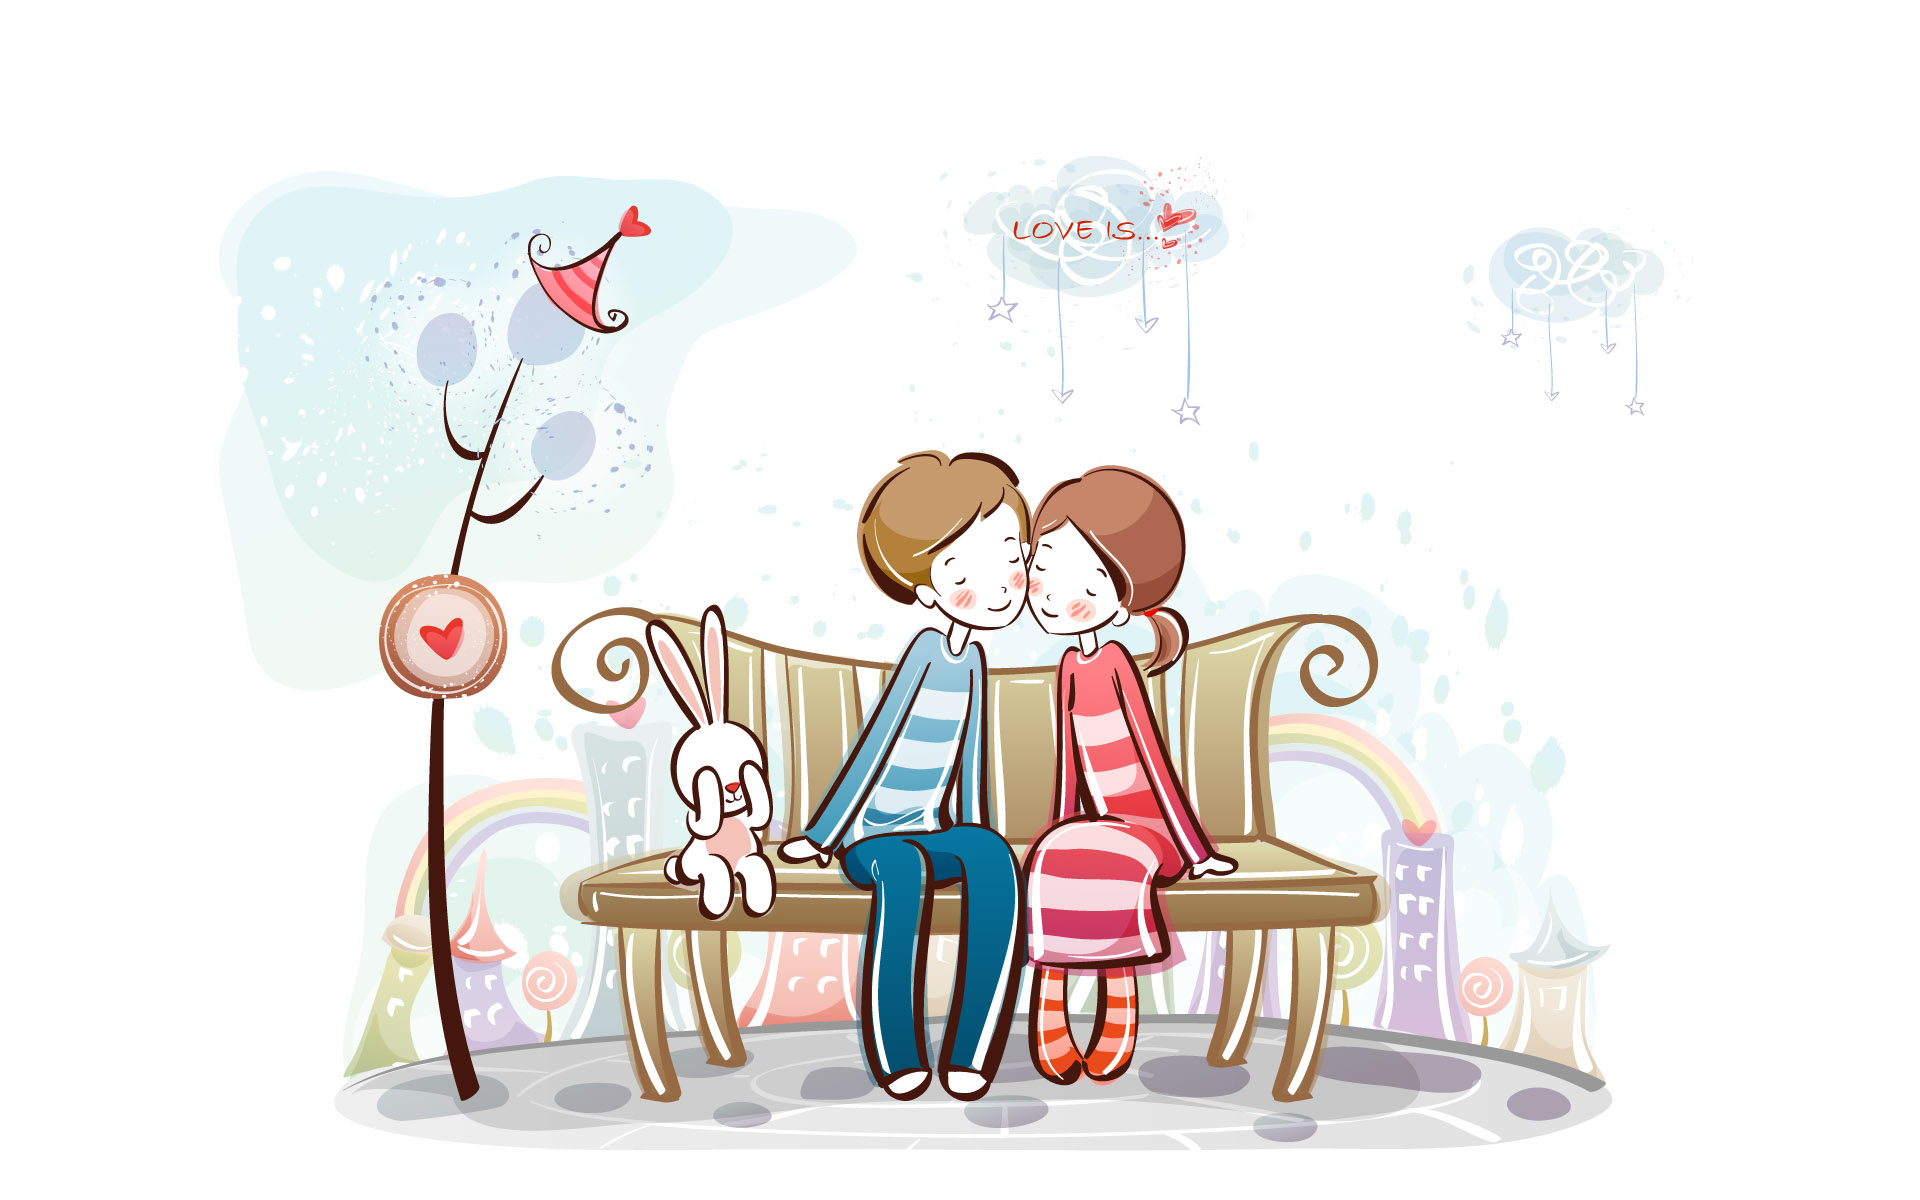 Romantic Valentine's Day illustration class 10727